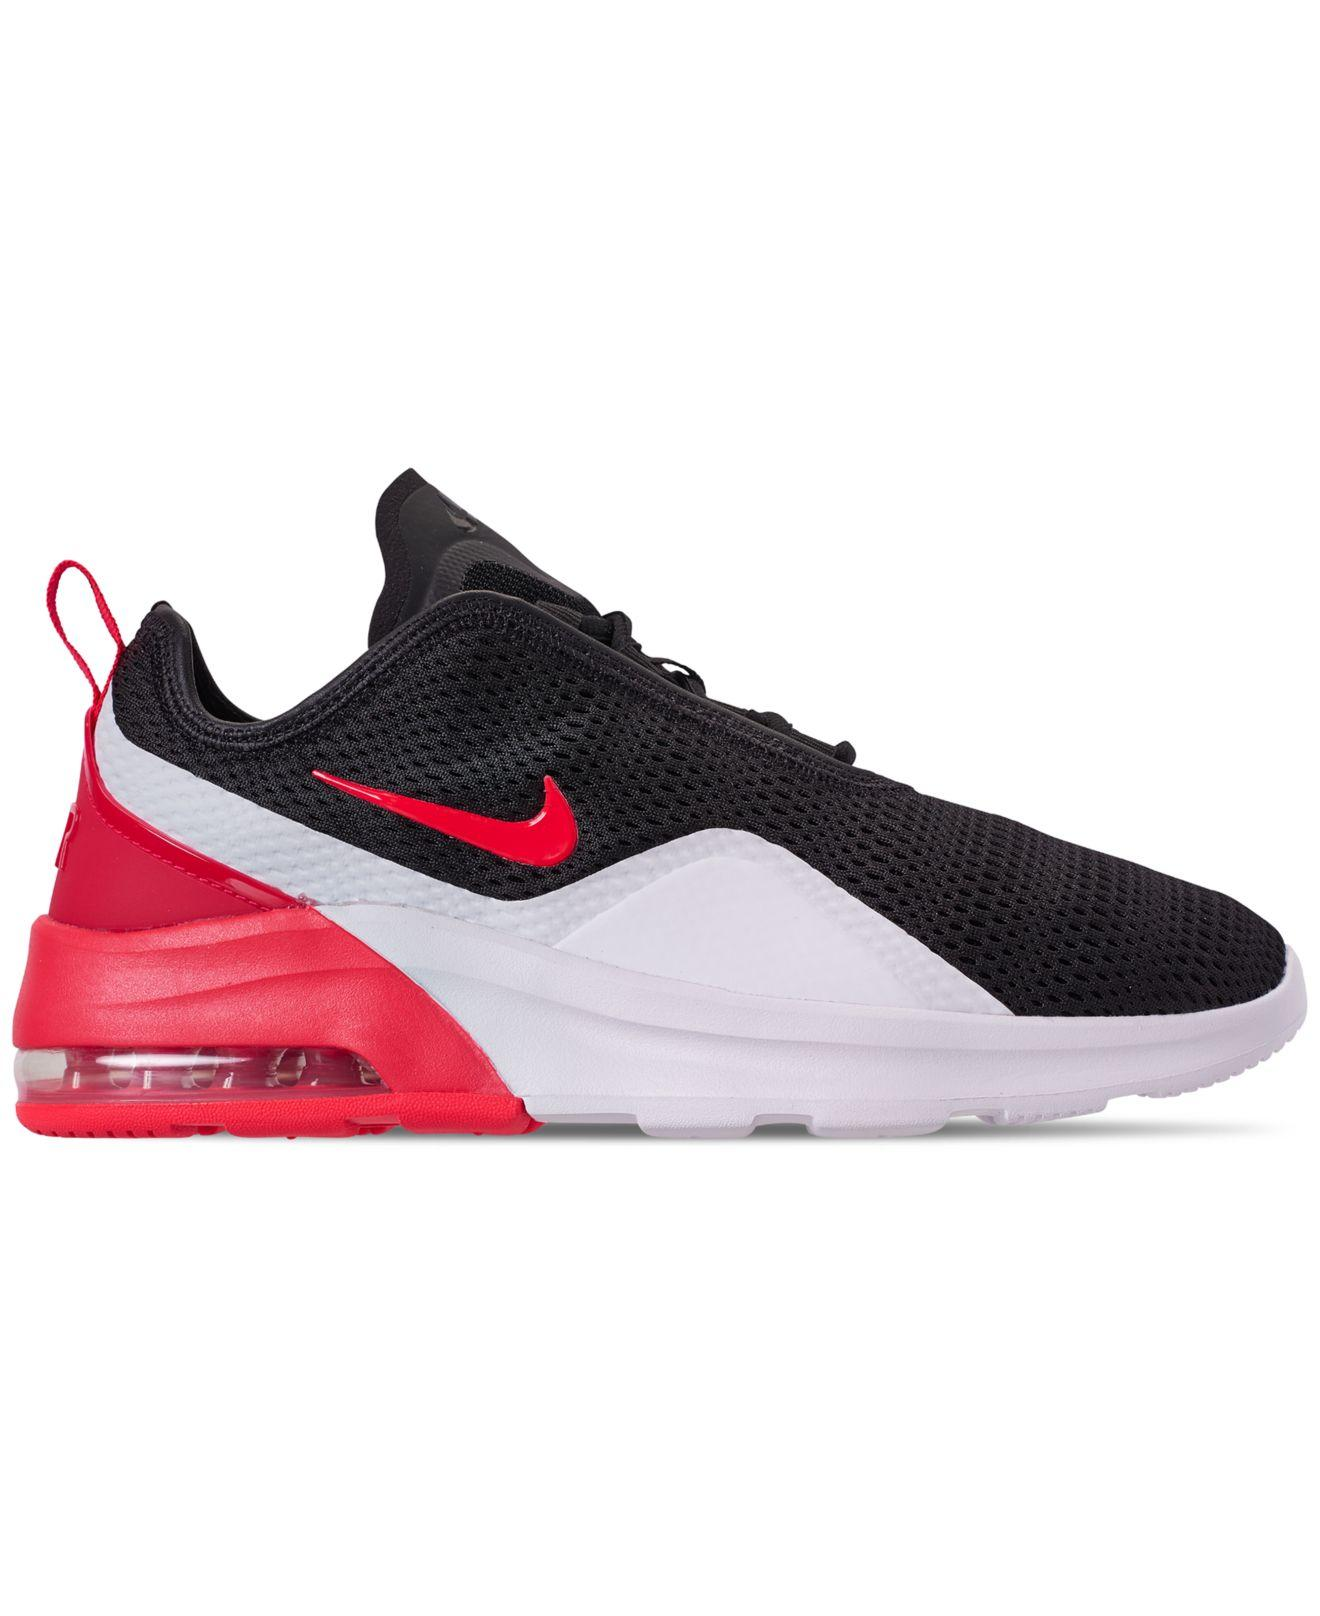 63137fbbba9f Nike Air Max Motion 2 Shoe for Men - Save 31% - Lyst